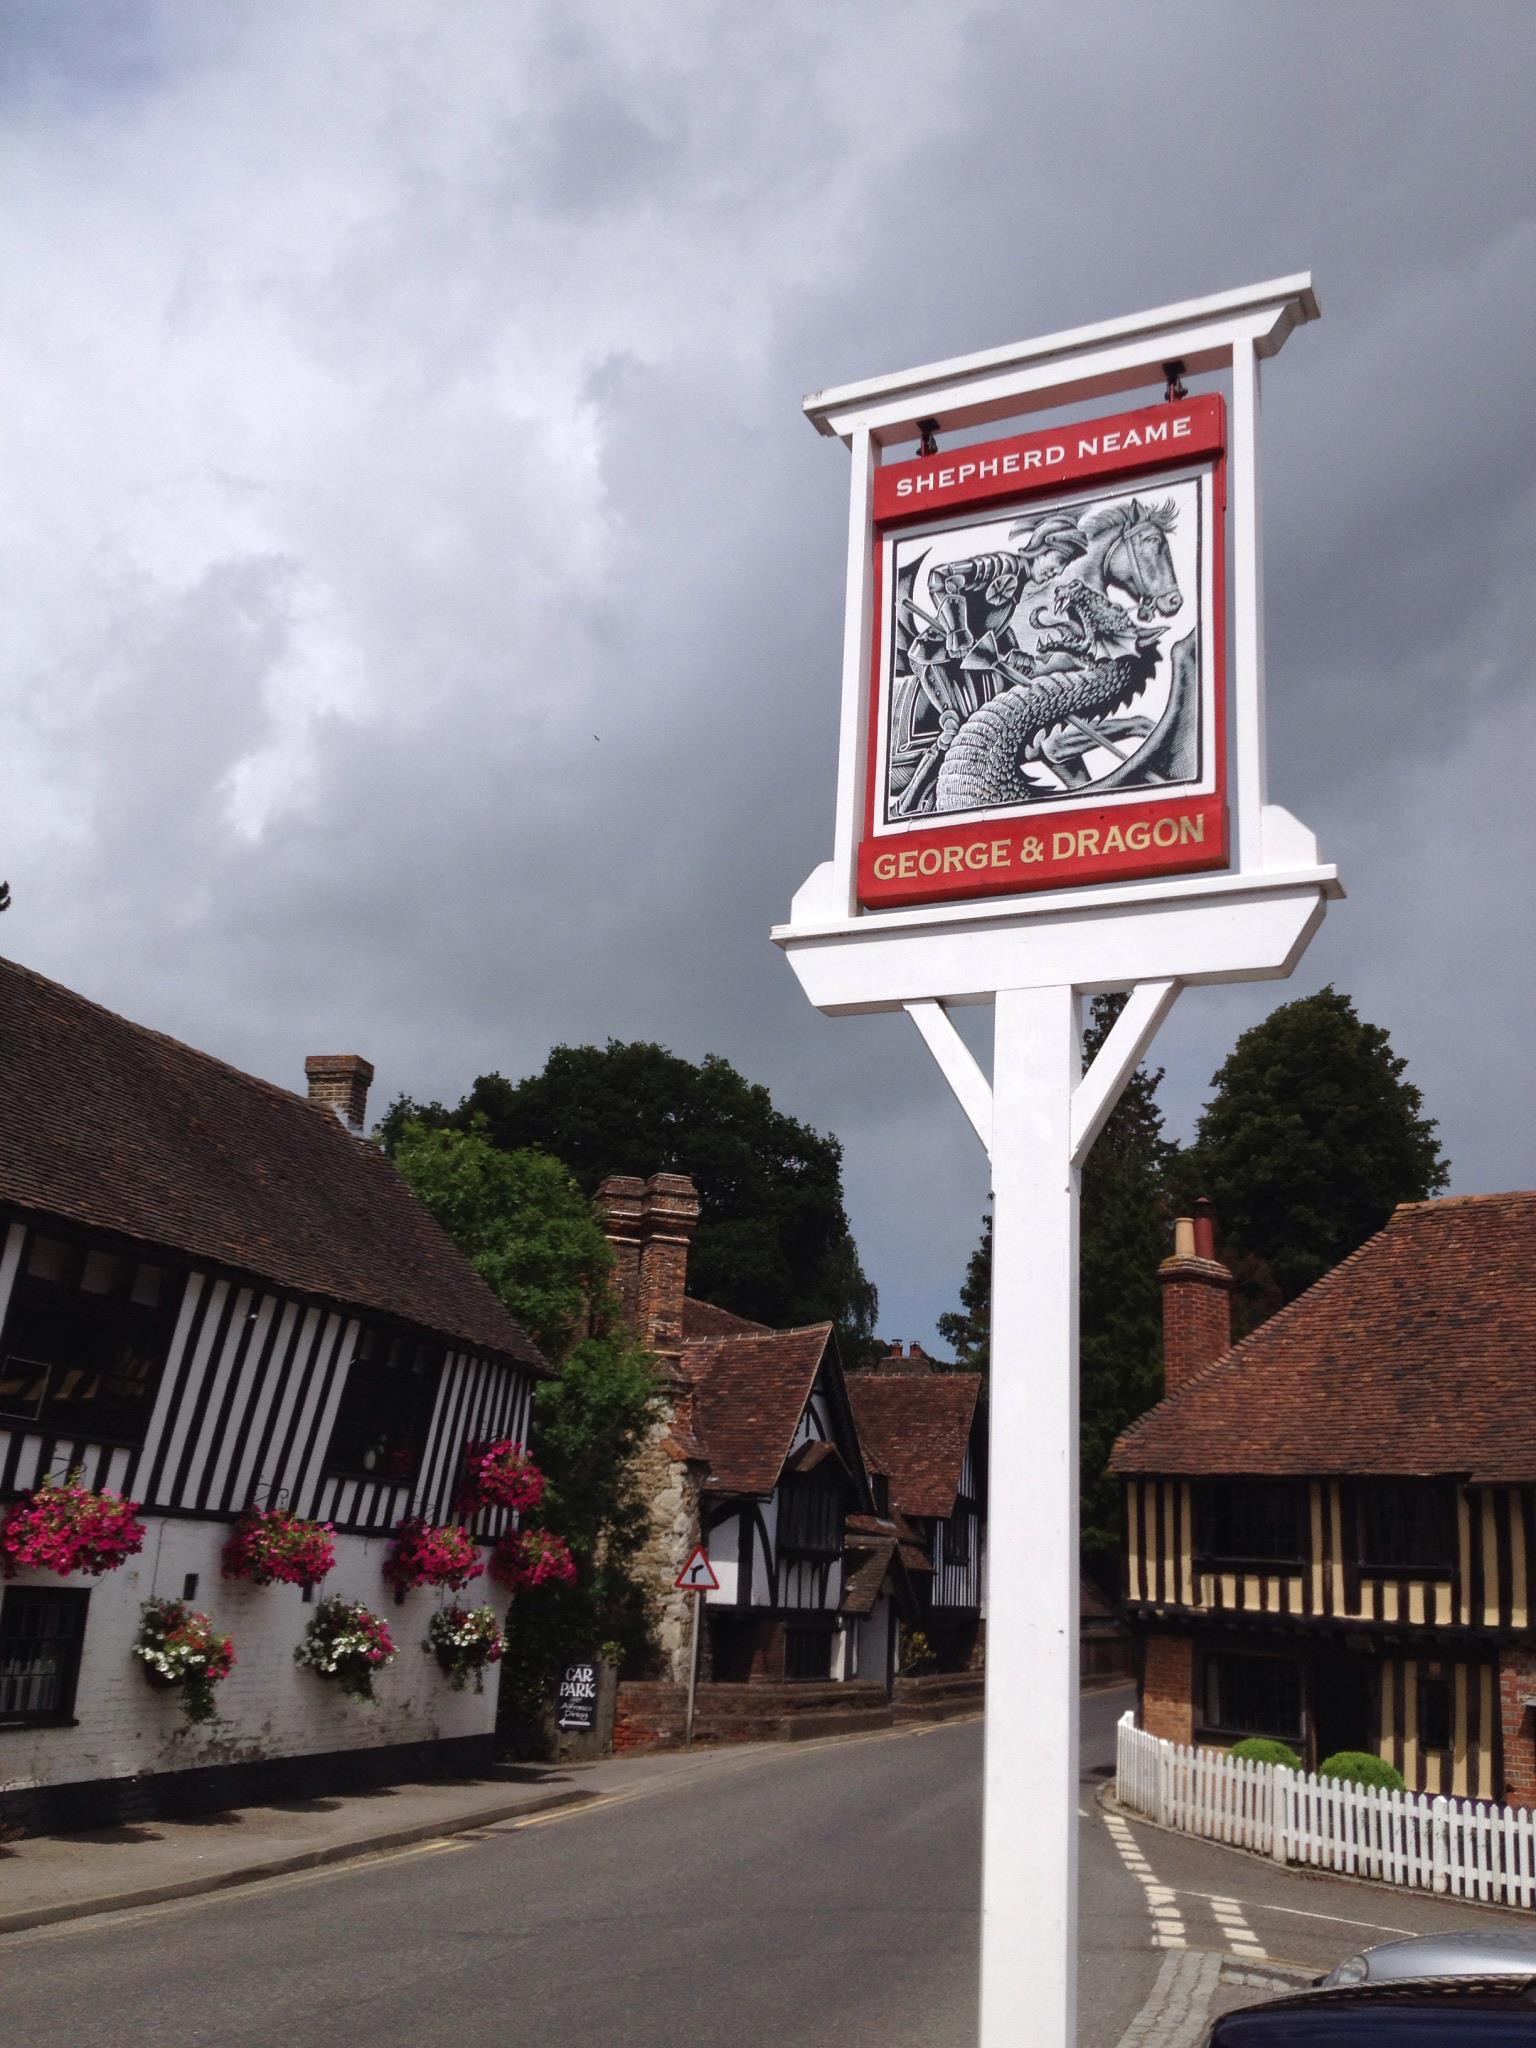 The George and Dragon pub sign